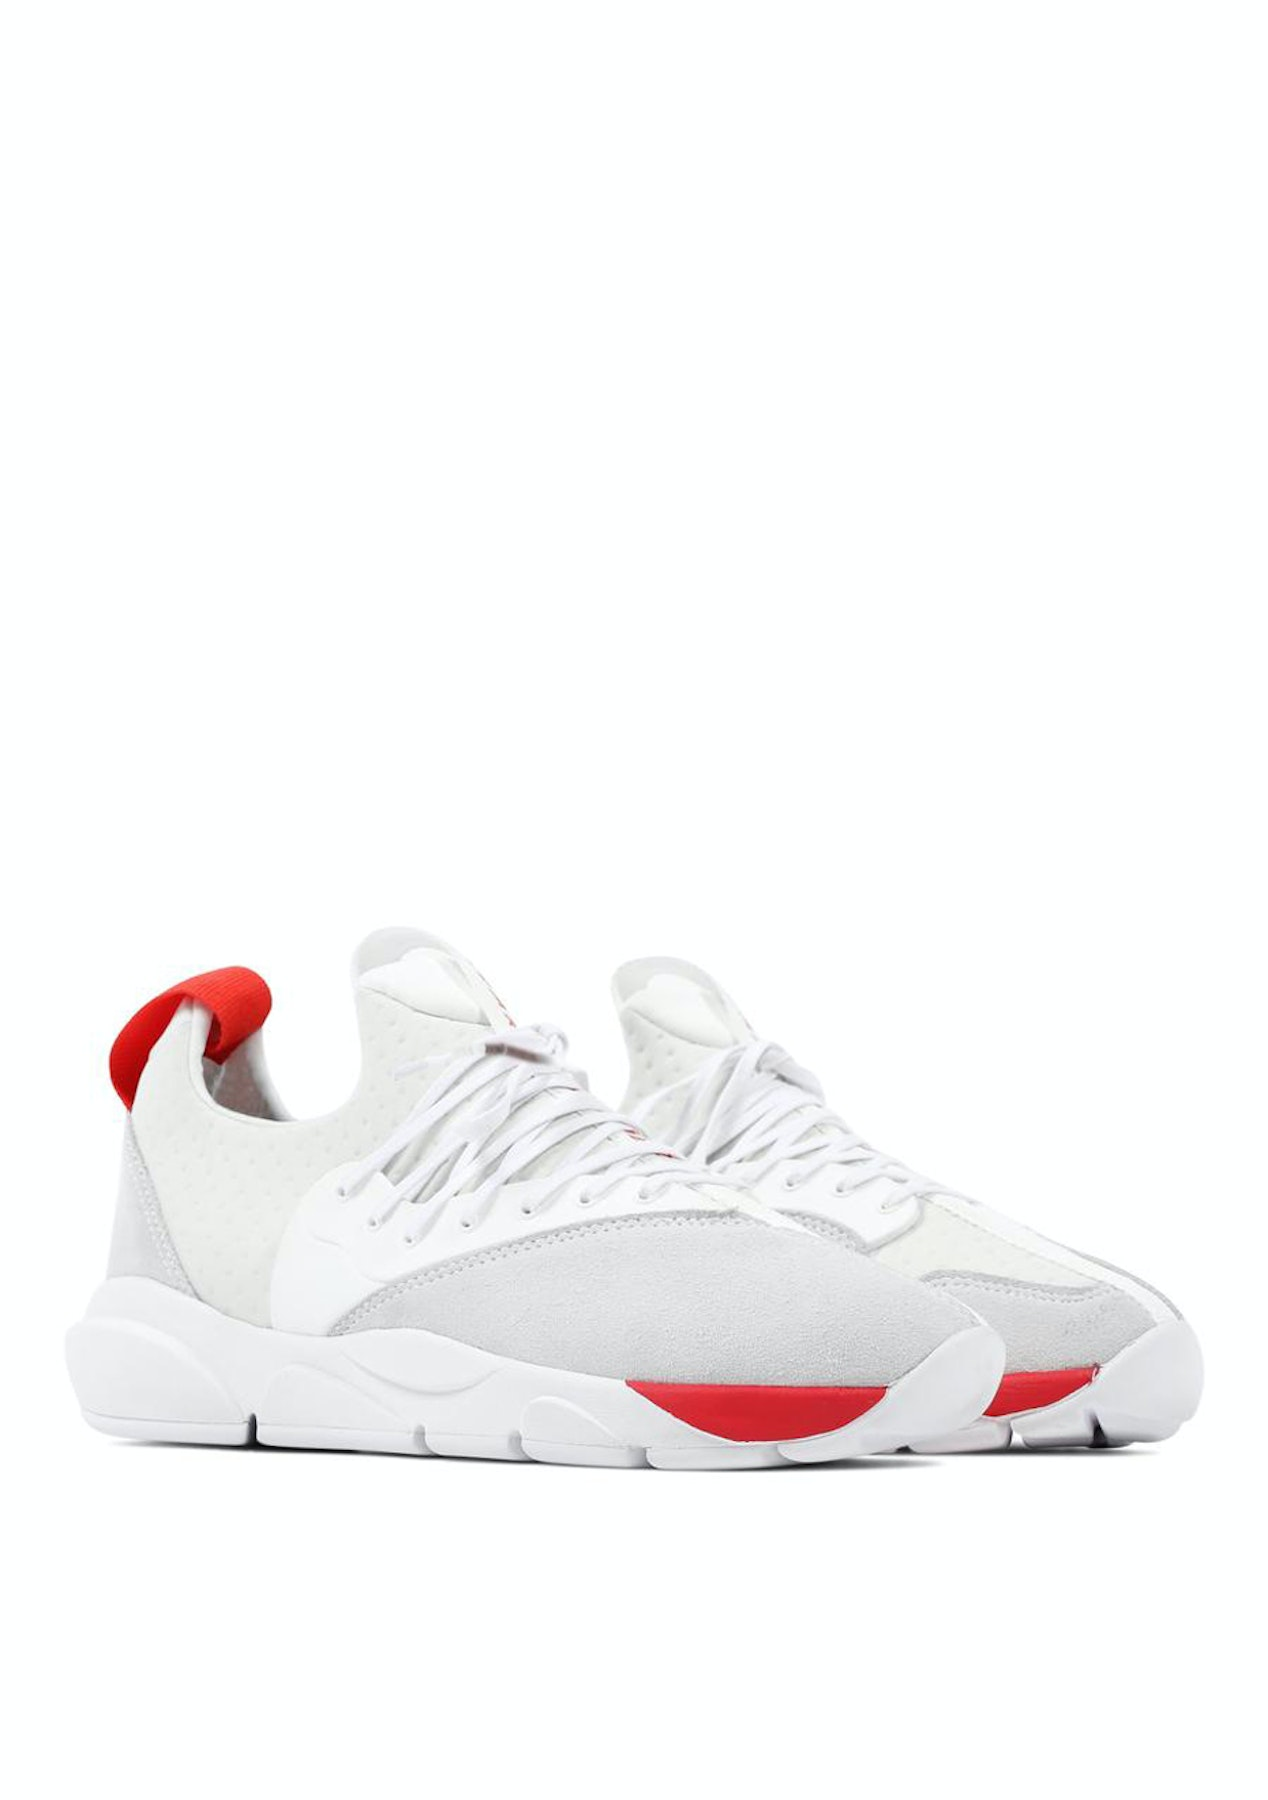 timeless design 2959b f3bad Clear Weather - Cloud Stryk Mens - White Red - Clear Weather Sneakers -  Onceit